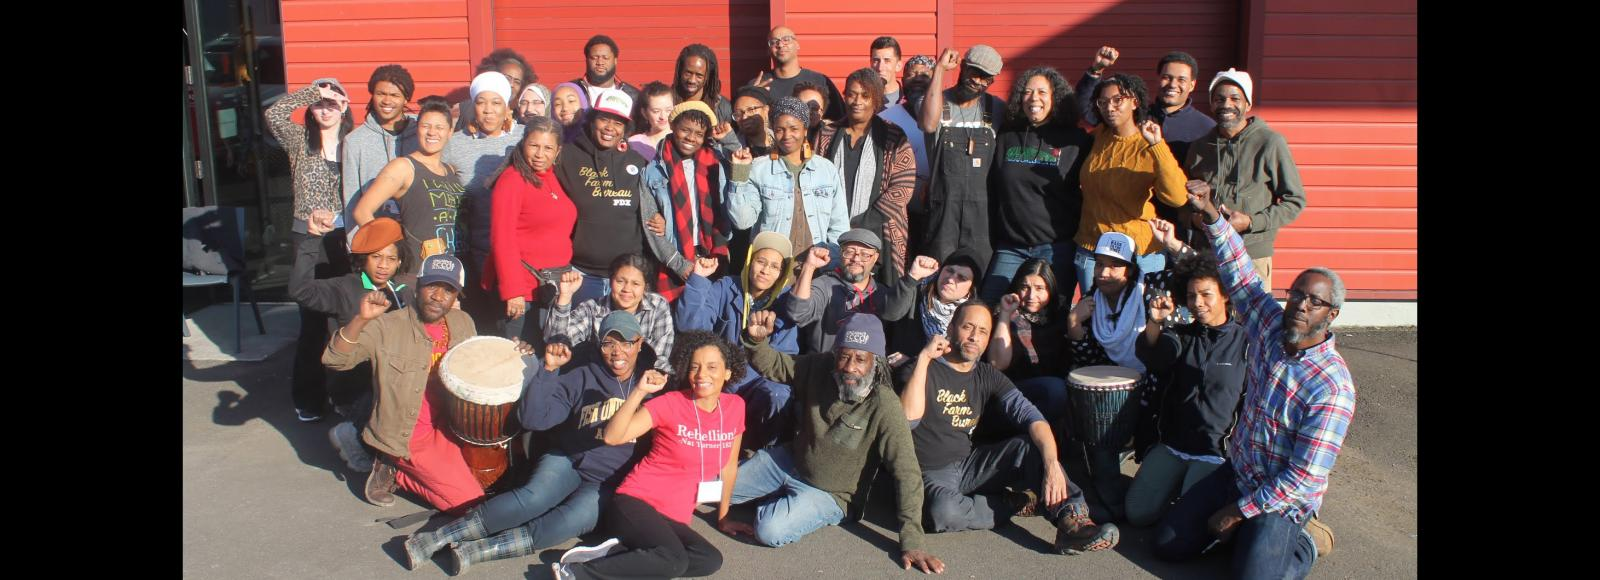 A group of people pose in front of a red warehouse; some folks are raising a Black power fist.